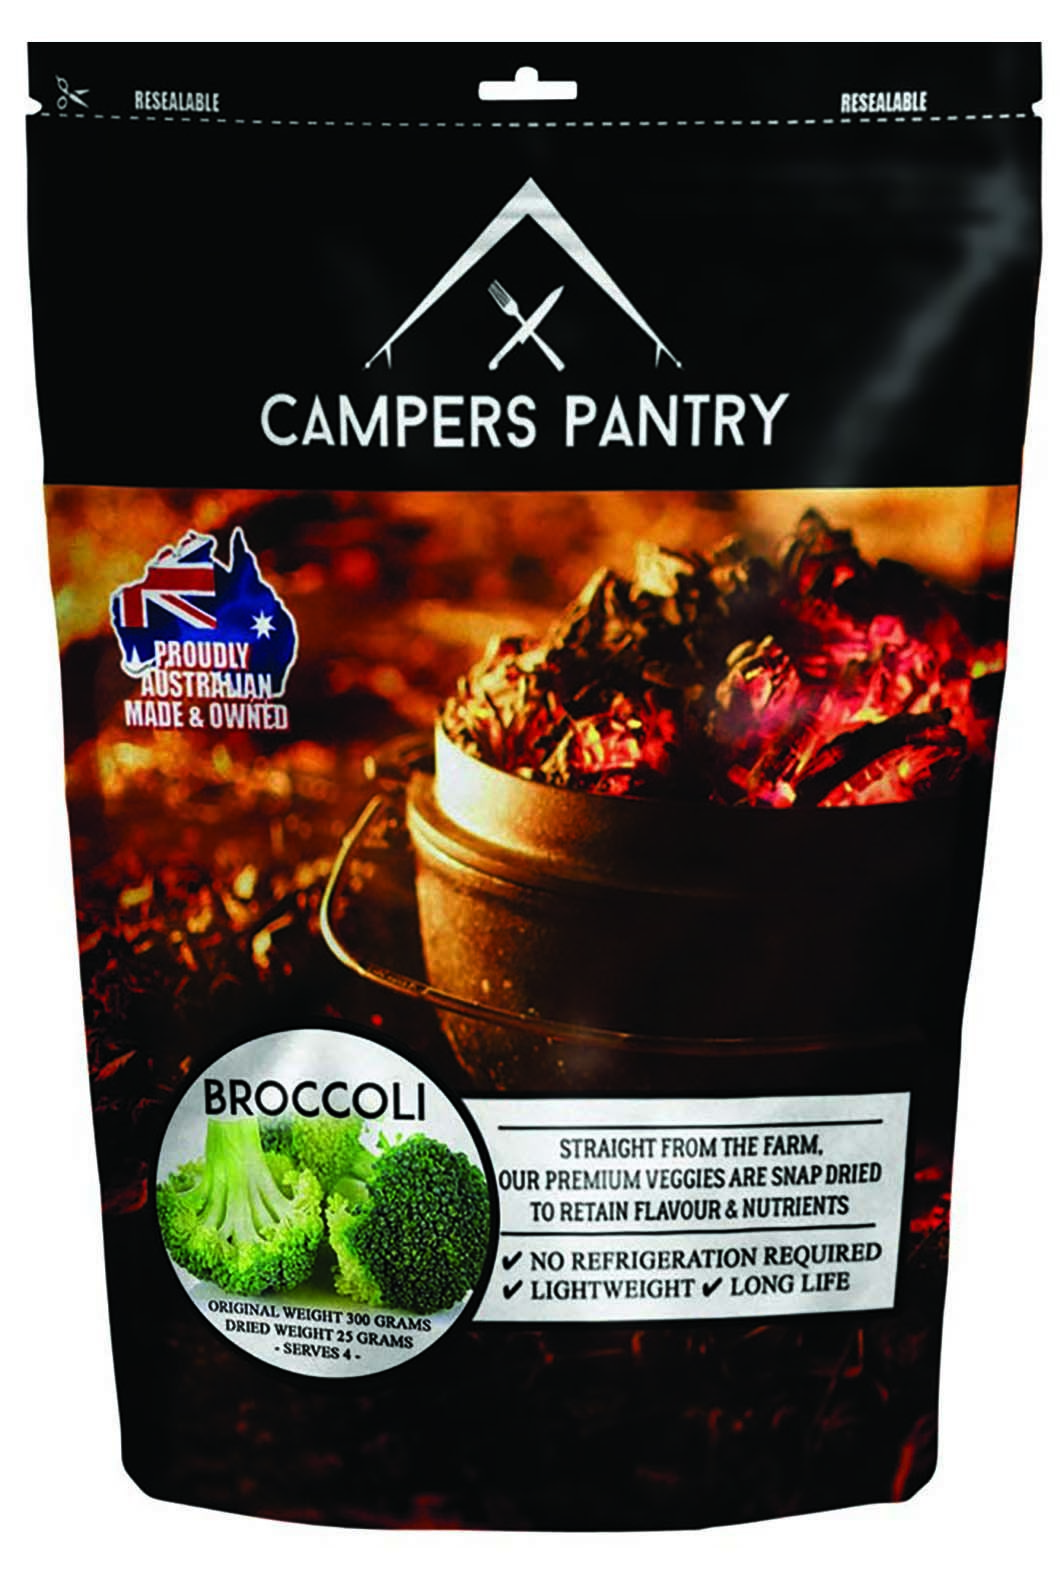 Campers Pantry 25g Dried Broccoli Freeze Dried Food (1 Serve), None, hi-res